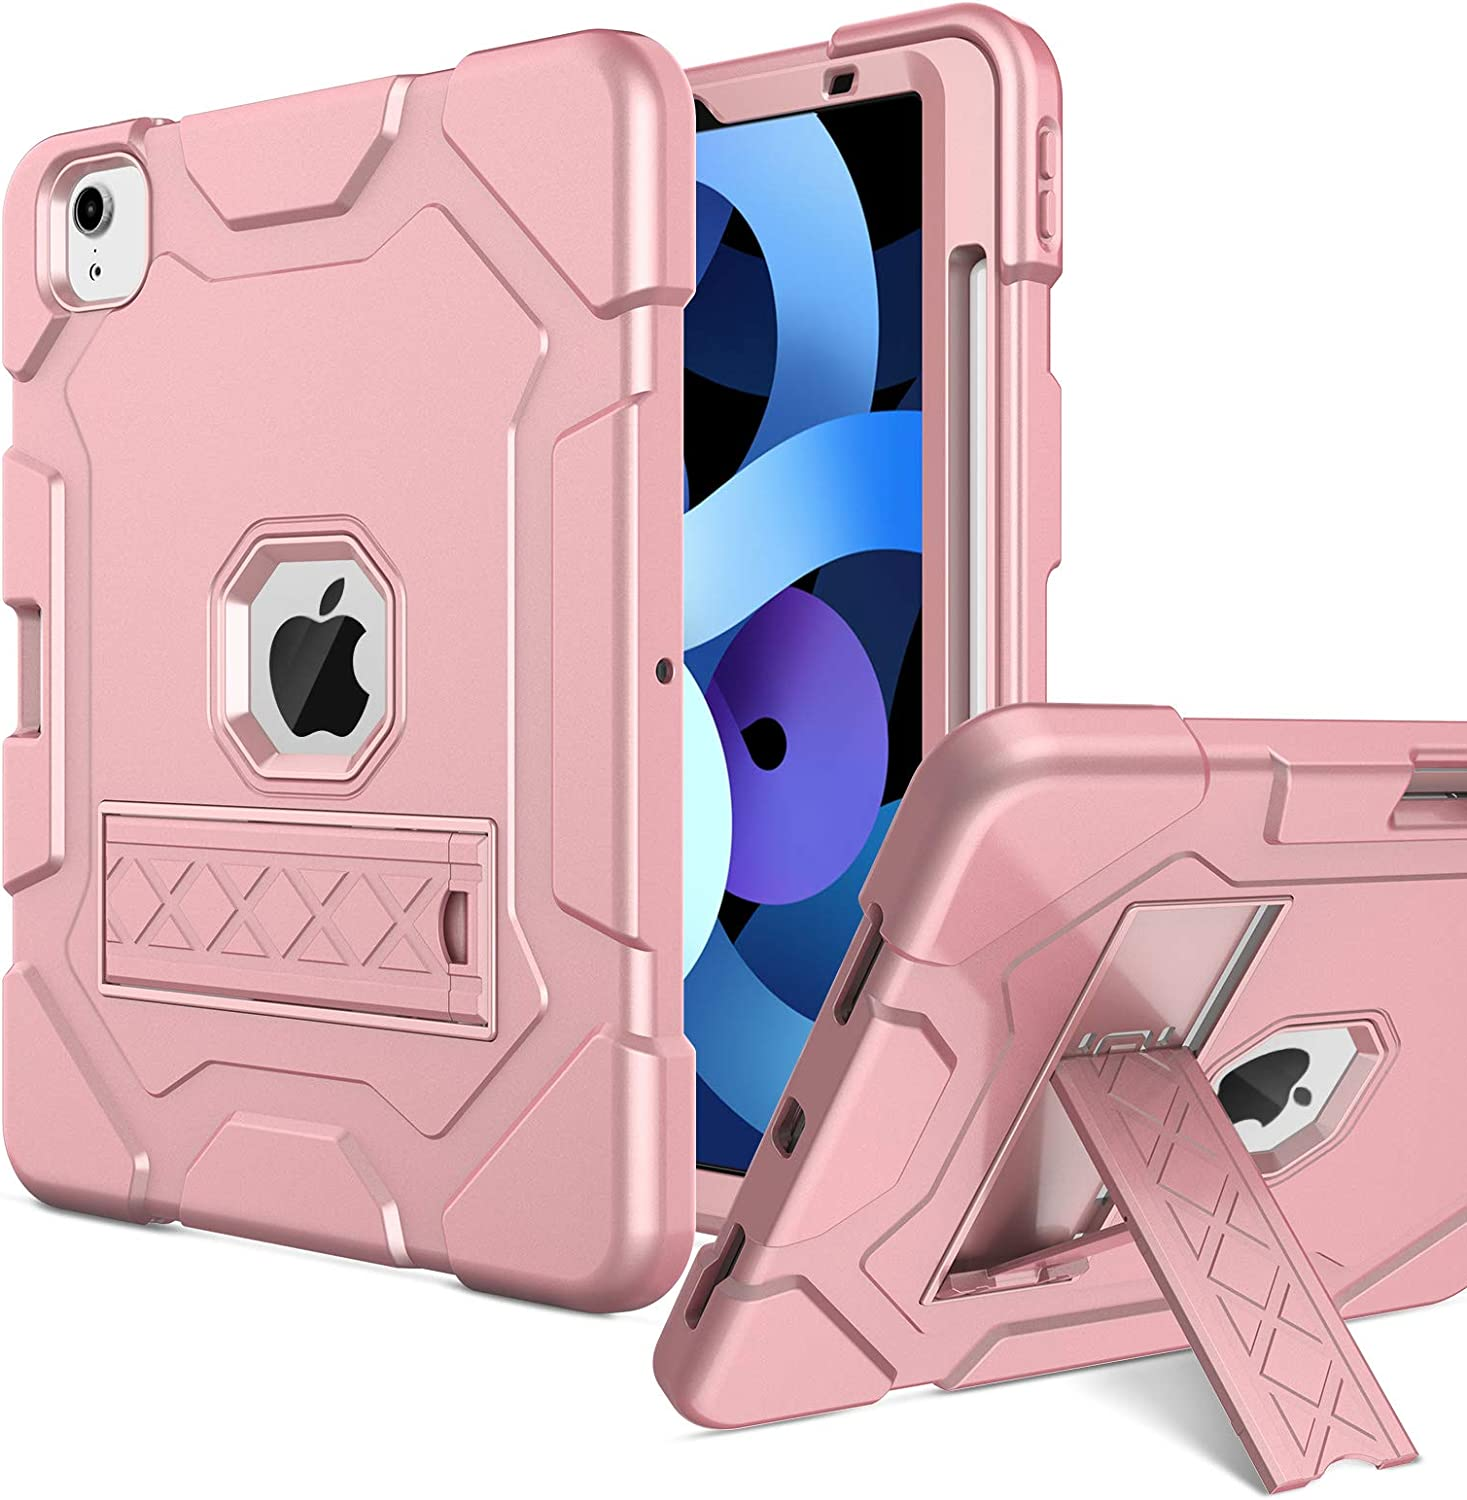 iPad Online limited product Air 4th Generation Case Weekly update Built- Yunerz with 4